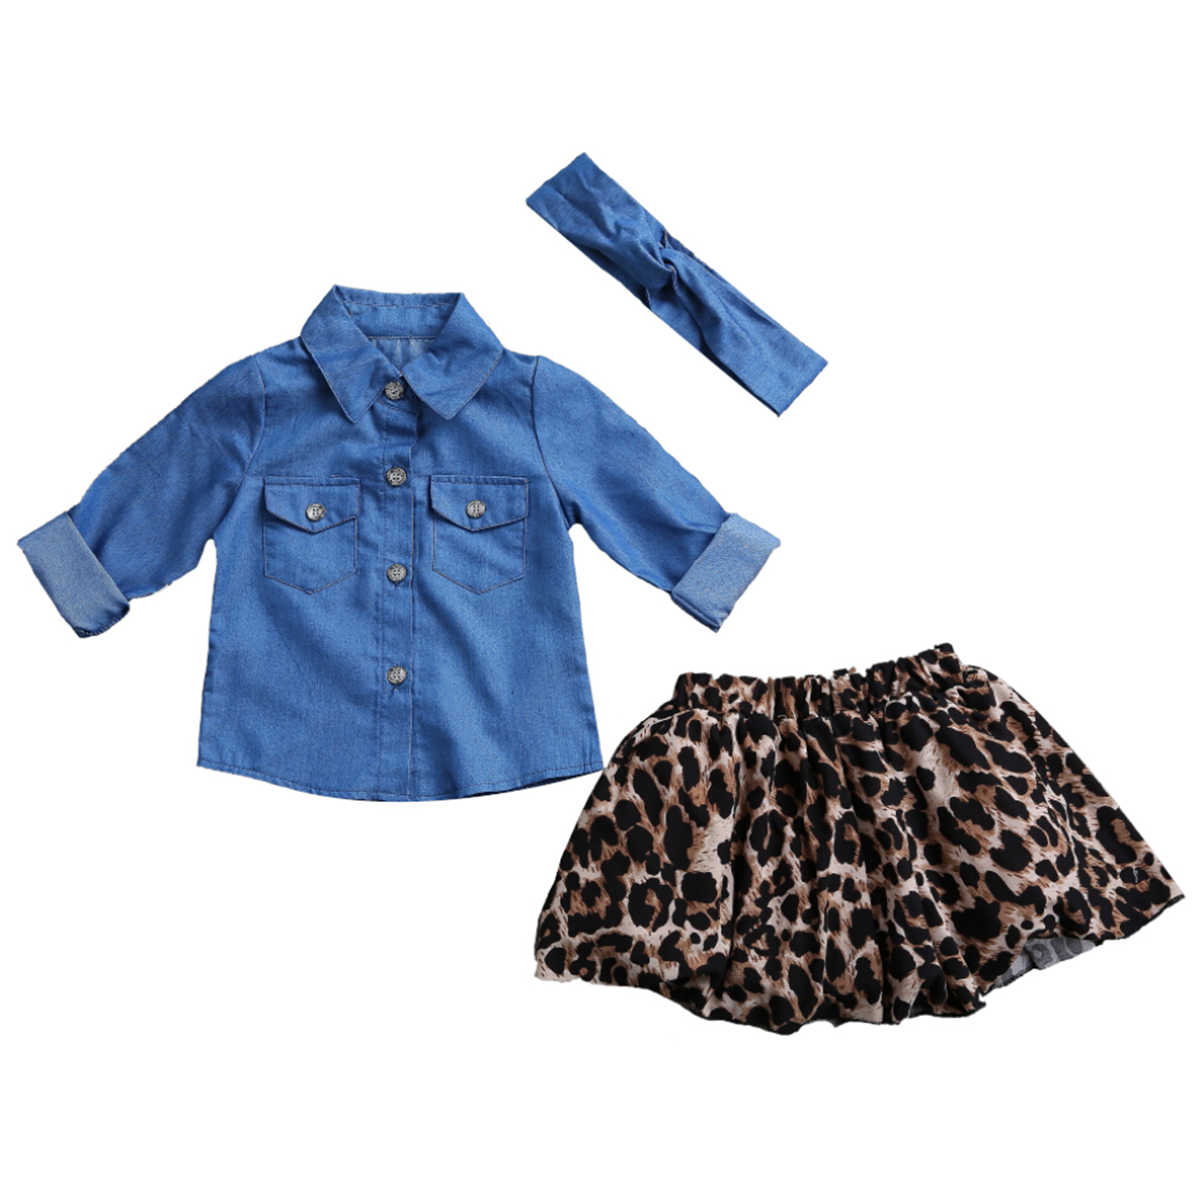 aa1584e0 pudcoco Newest Arrivals Hot Women Mother Daughter Family Matching Outfits  Sets Tops Skirts Summer Girl Casual